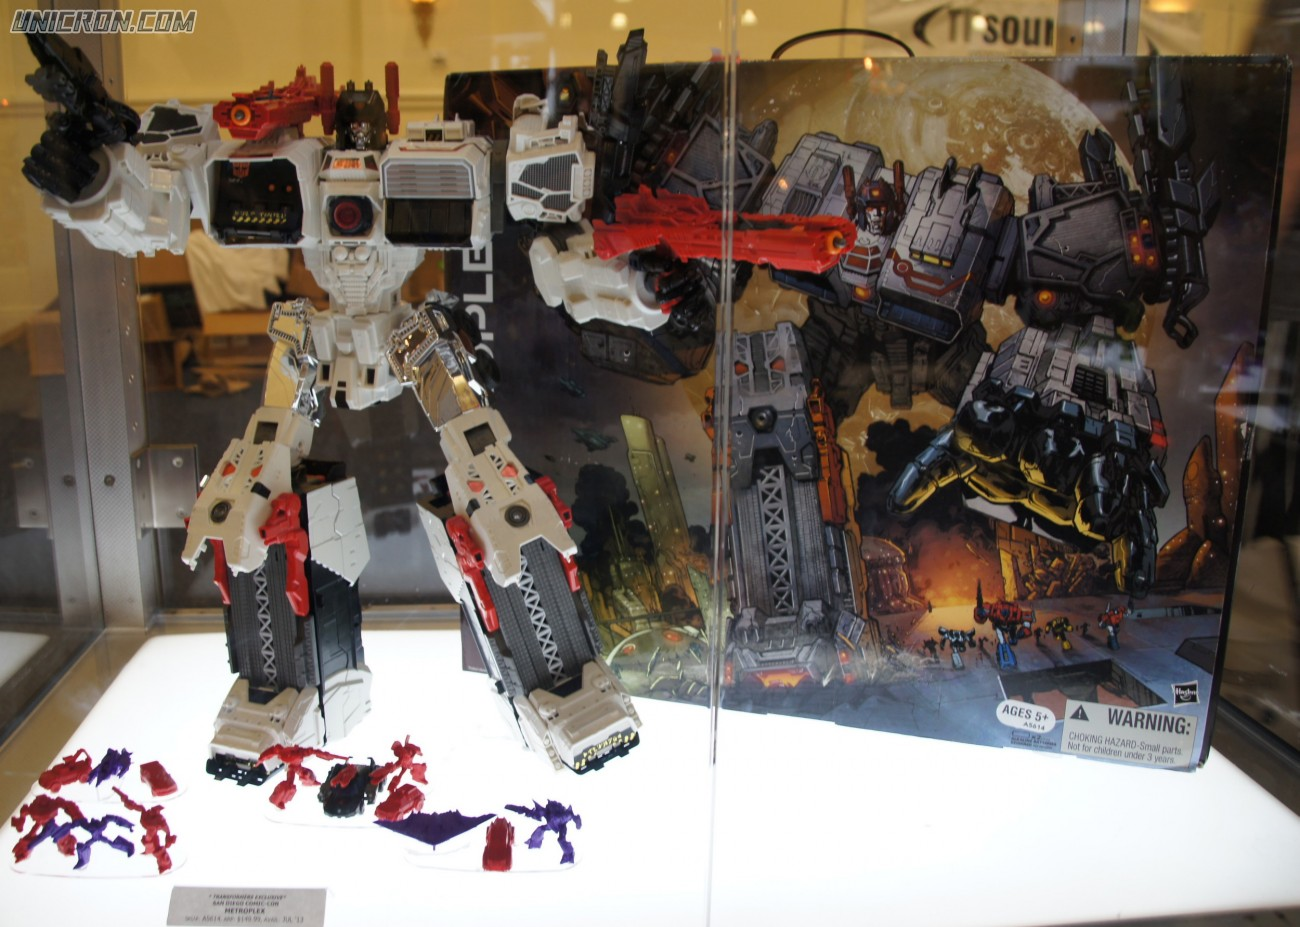 Transformers Generations Metroplex -SDCC version toy